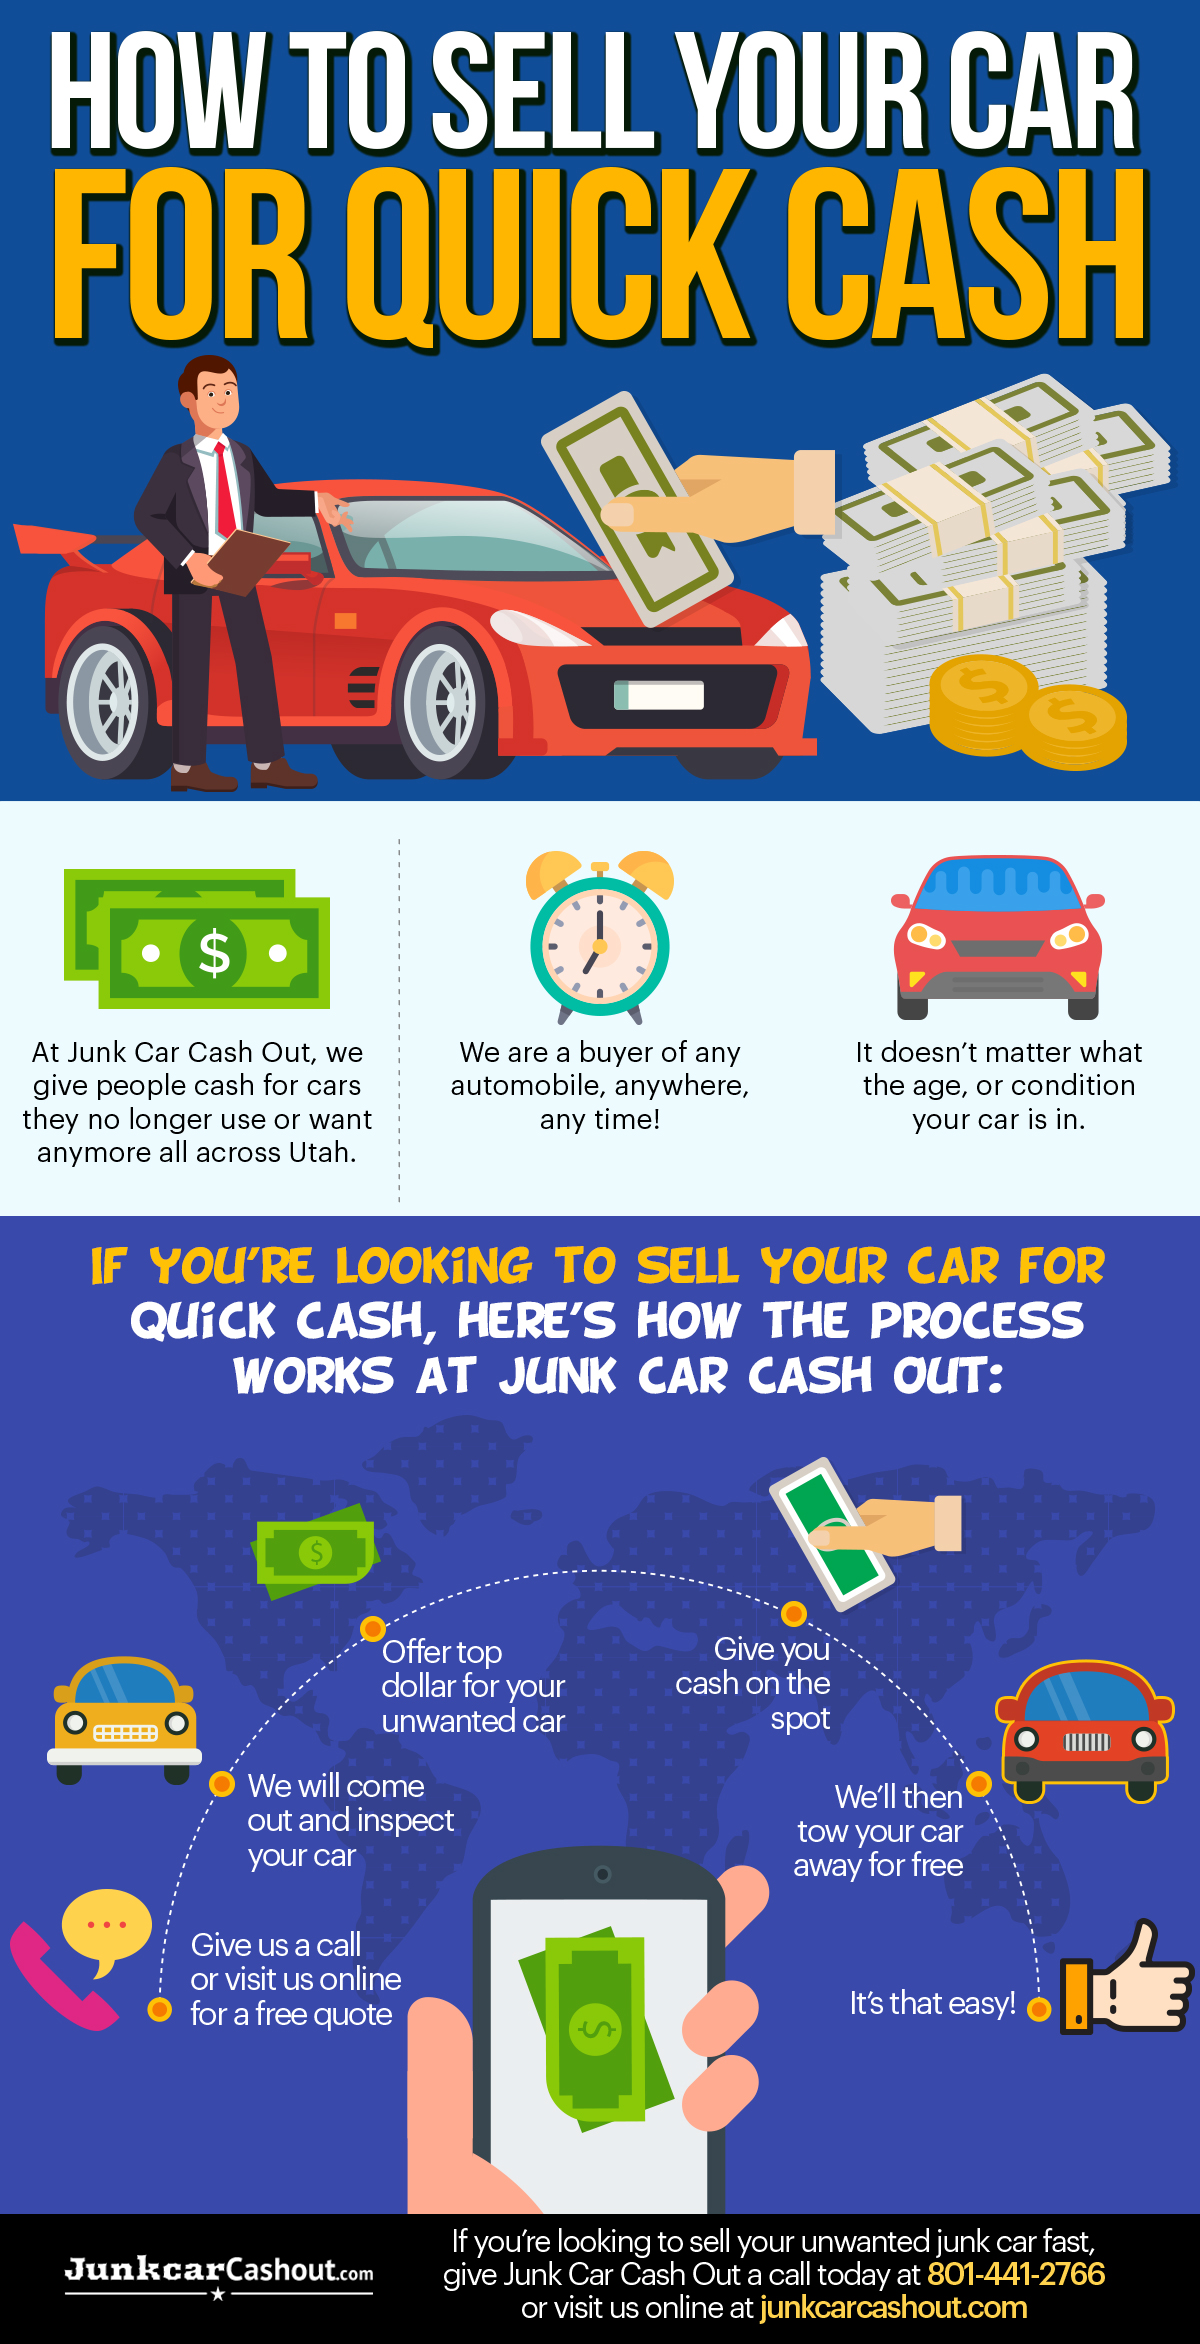 How to Sell Your Car for Quick Cash Infographic - Junk Car Cash Out Utah